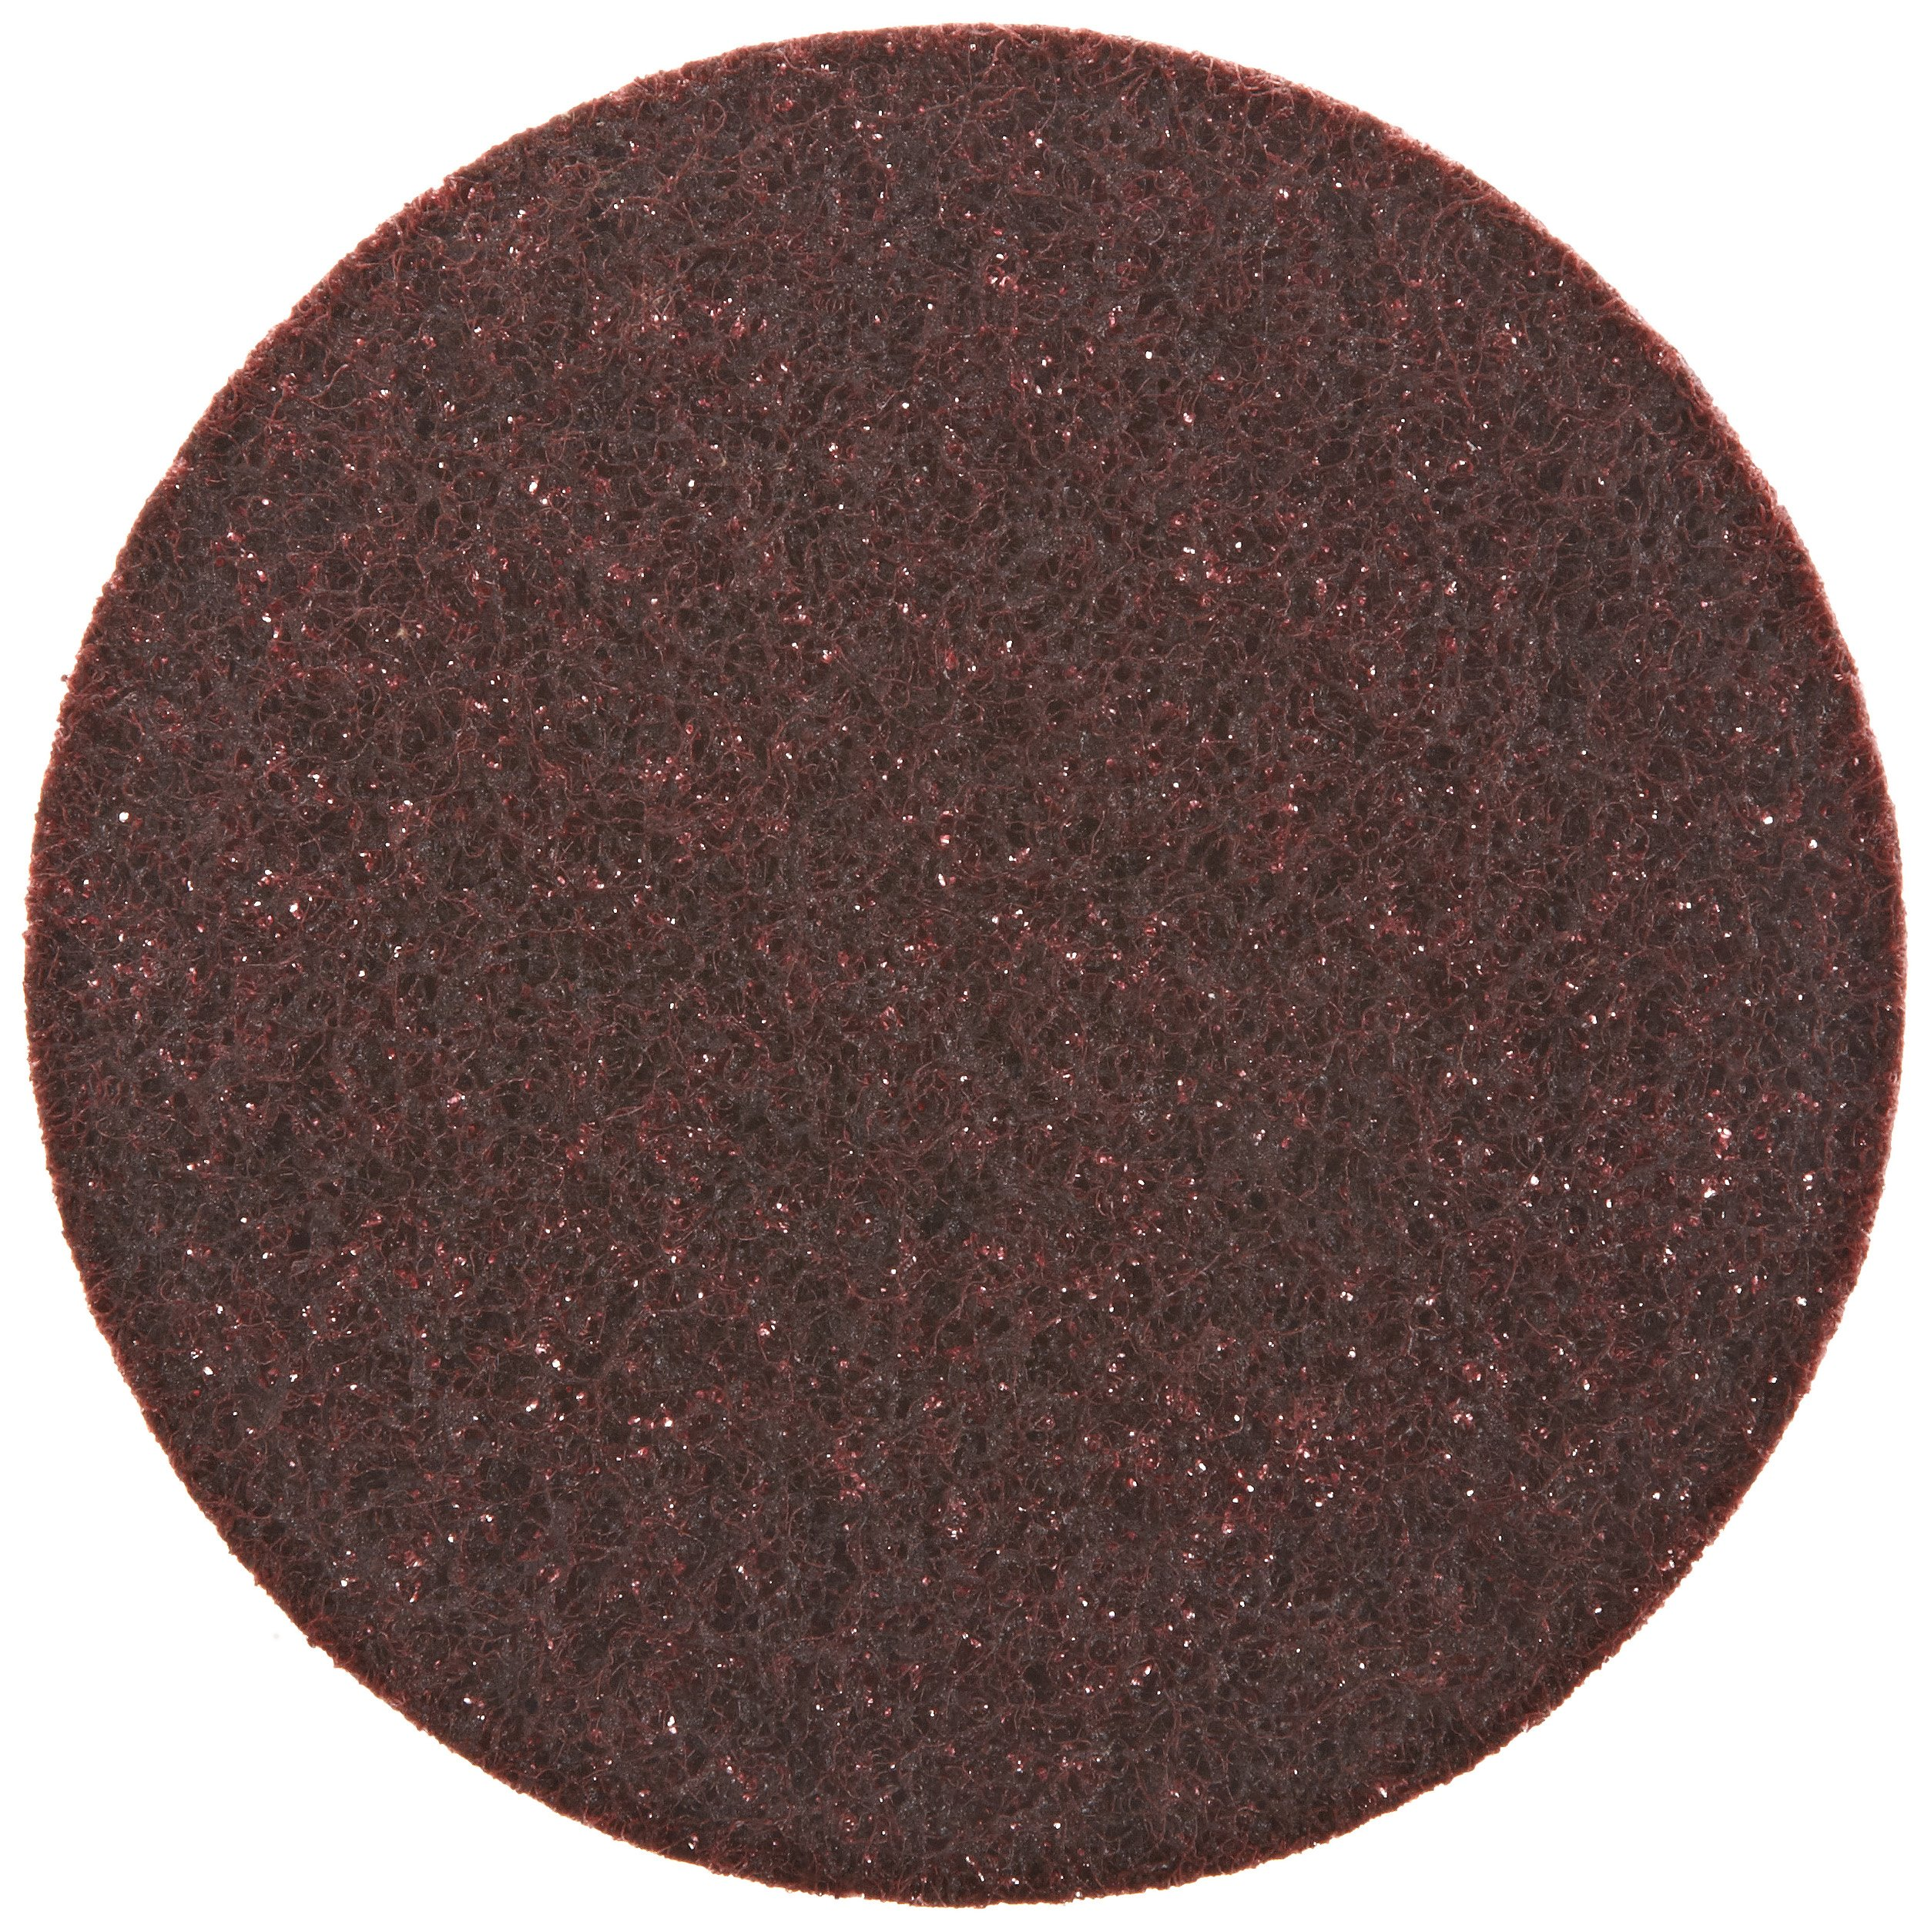 Scotch-Brite(TM) Surface Conditioning Disc, Hook and Loop Attachment, Aluminum Oxide, 5 Diameter, NH A Medium (Pack of 10)